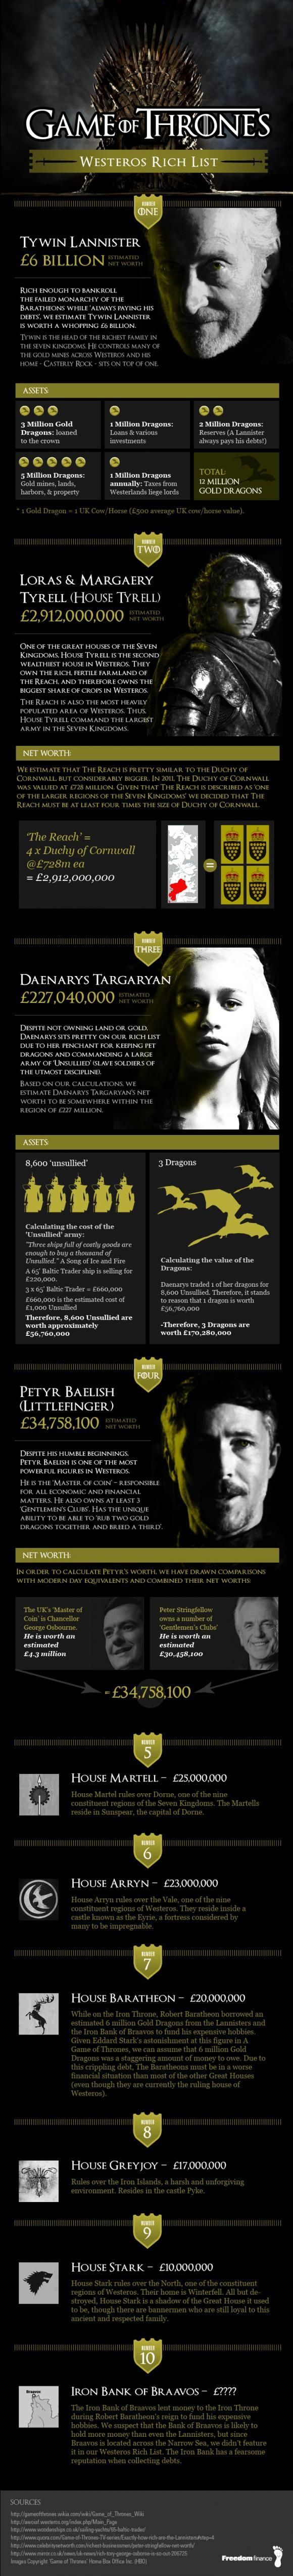 Game of Thrones Rich List infographic shows Westeros' net worth